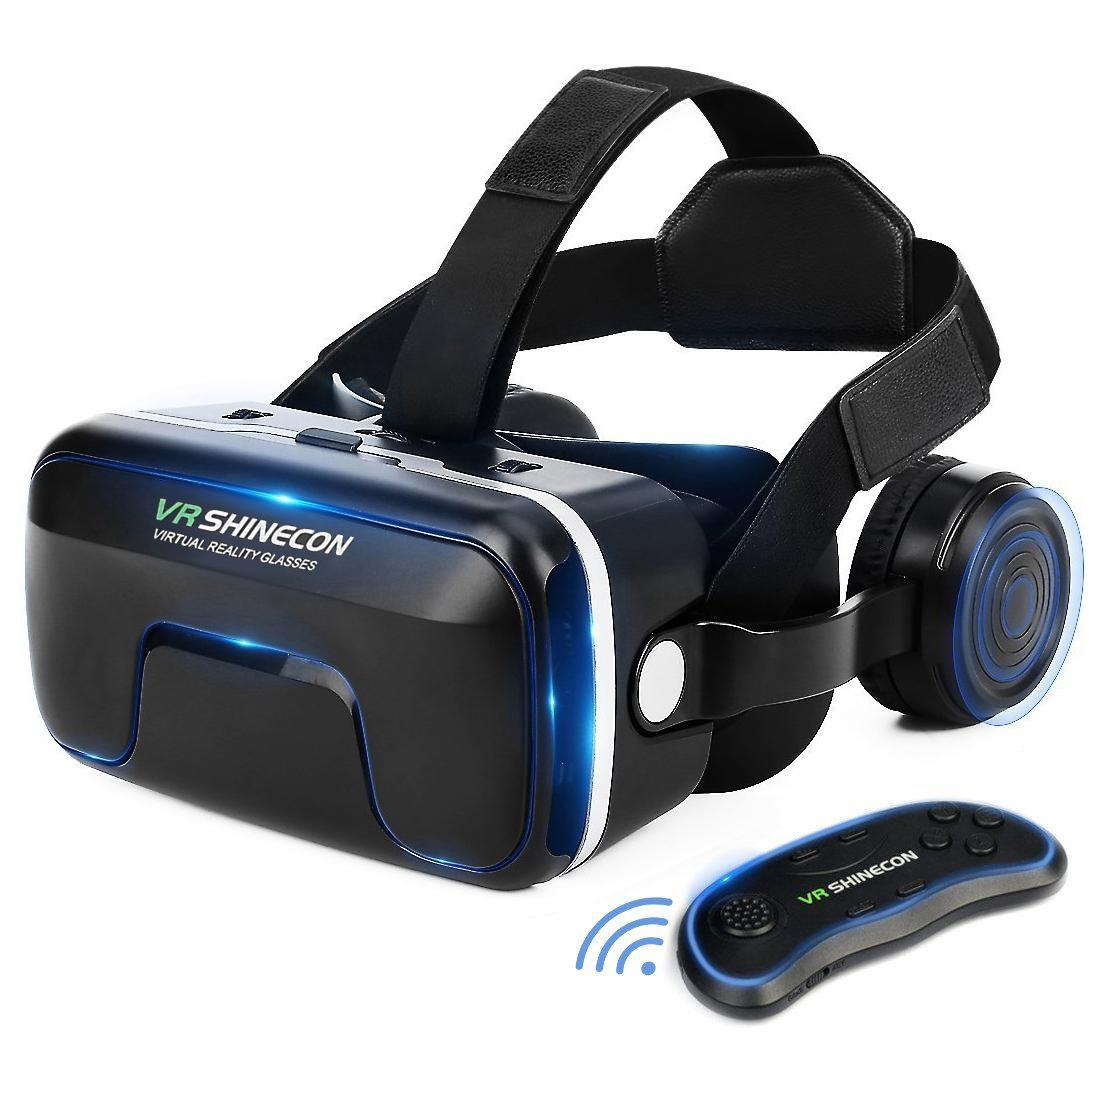 b84c14f17415 ETVR 3D VR Box Headset With Remote Controller